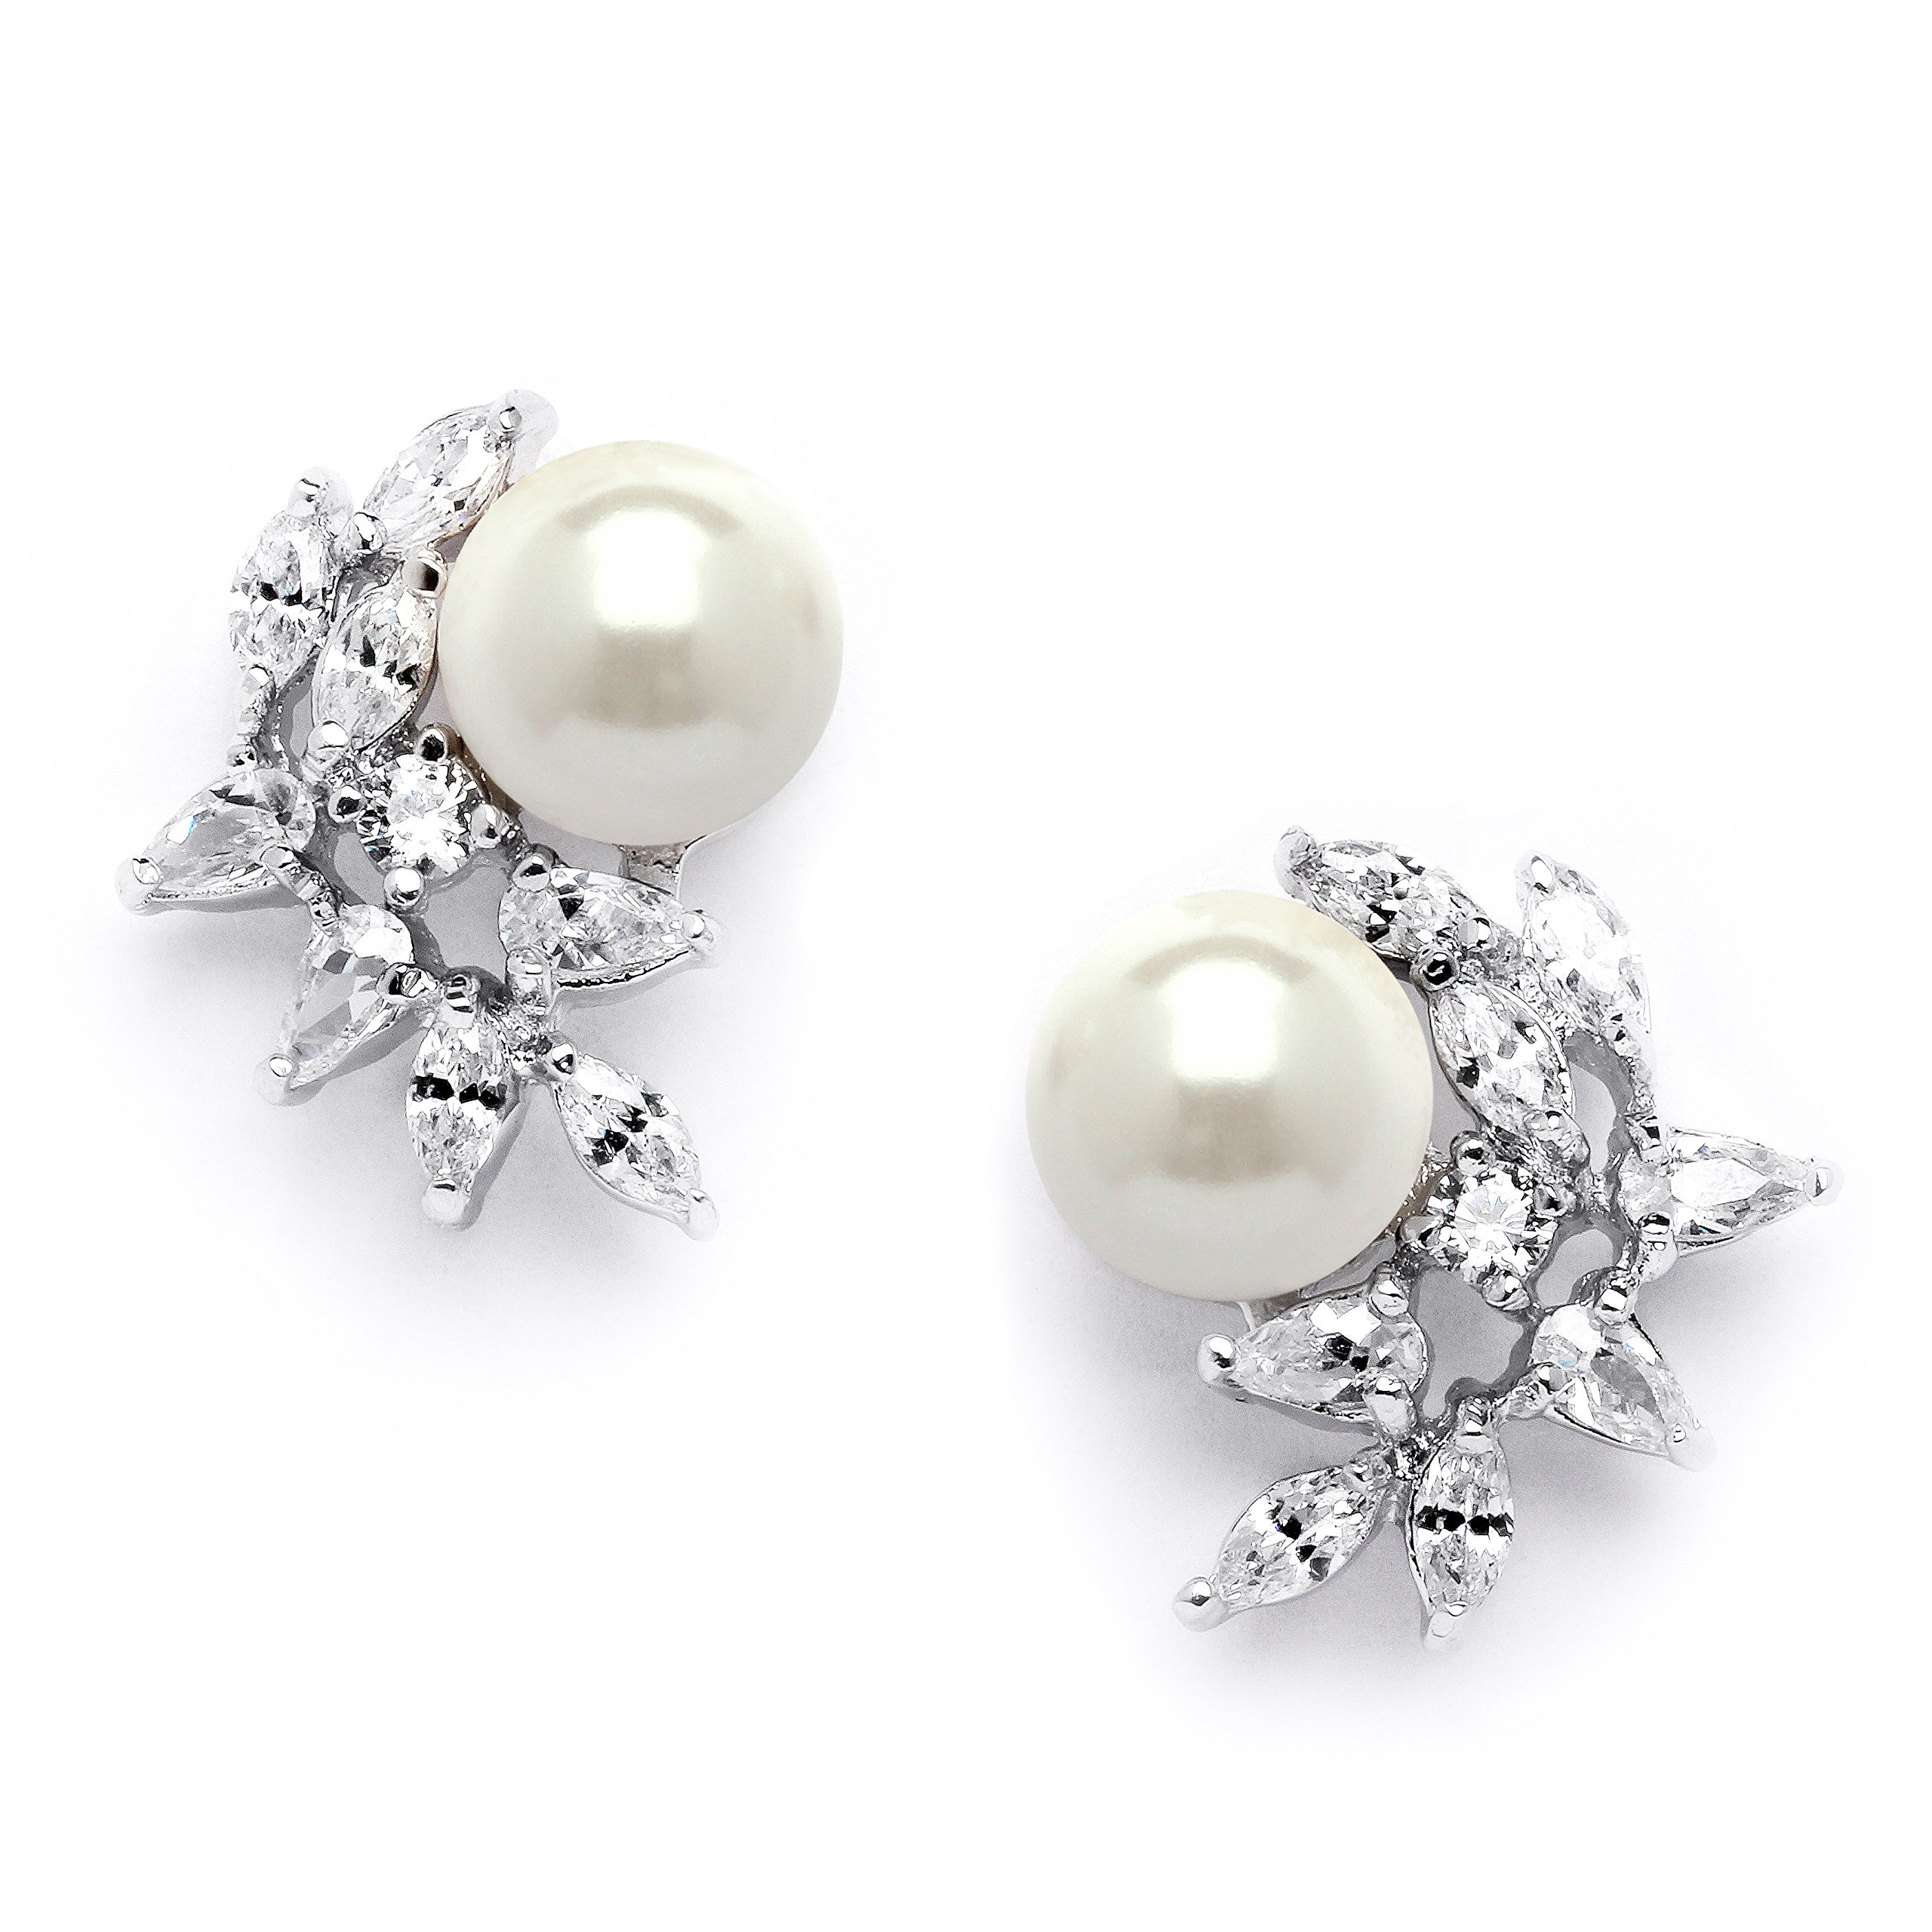 Mariell Ivory Pearls and CZ Cluster Wedding Earrings for Brides, Bridesmaids & Mother of the Bride by Mariell